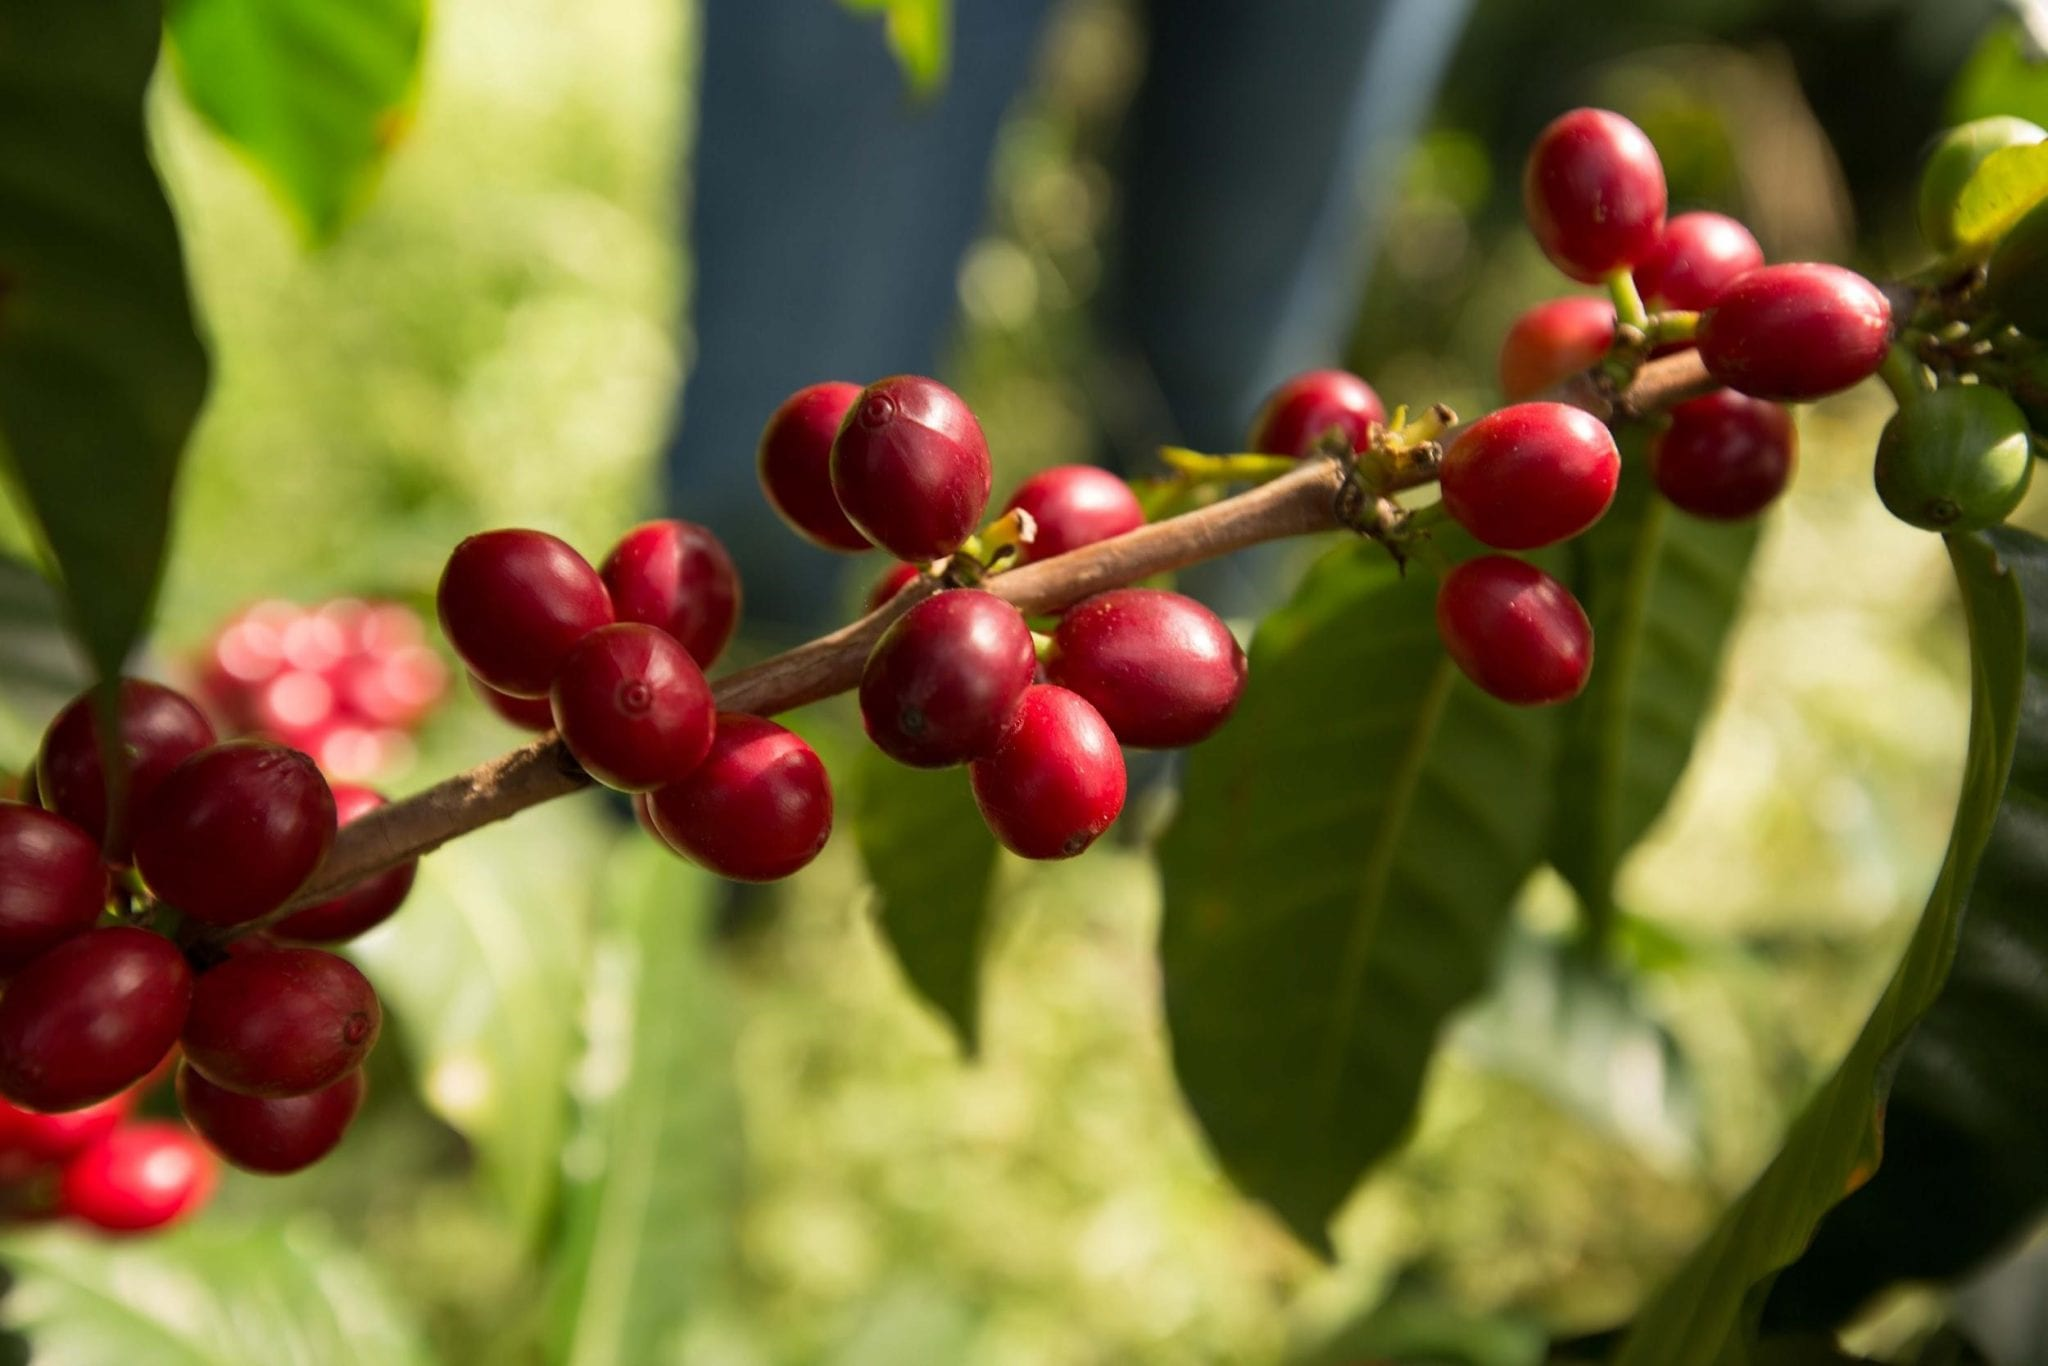 Ripe coffee cherries on a bush.